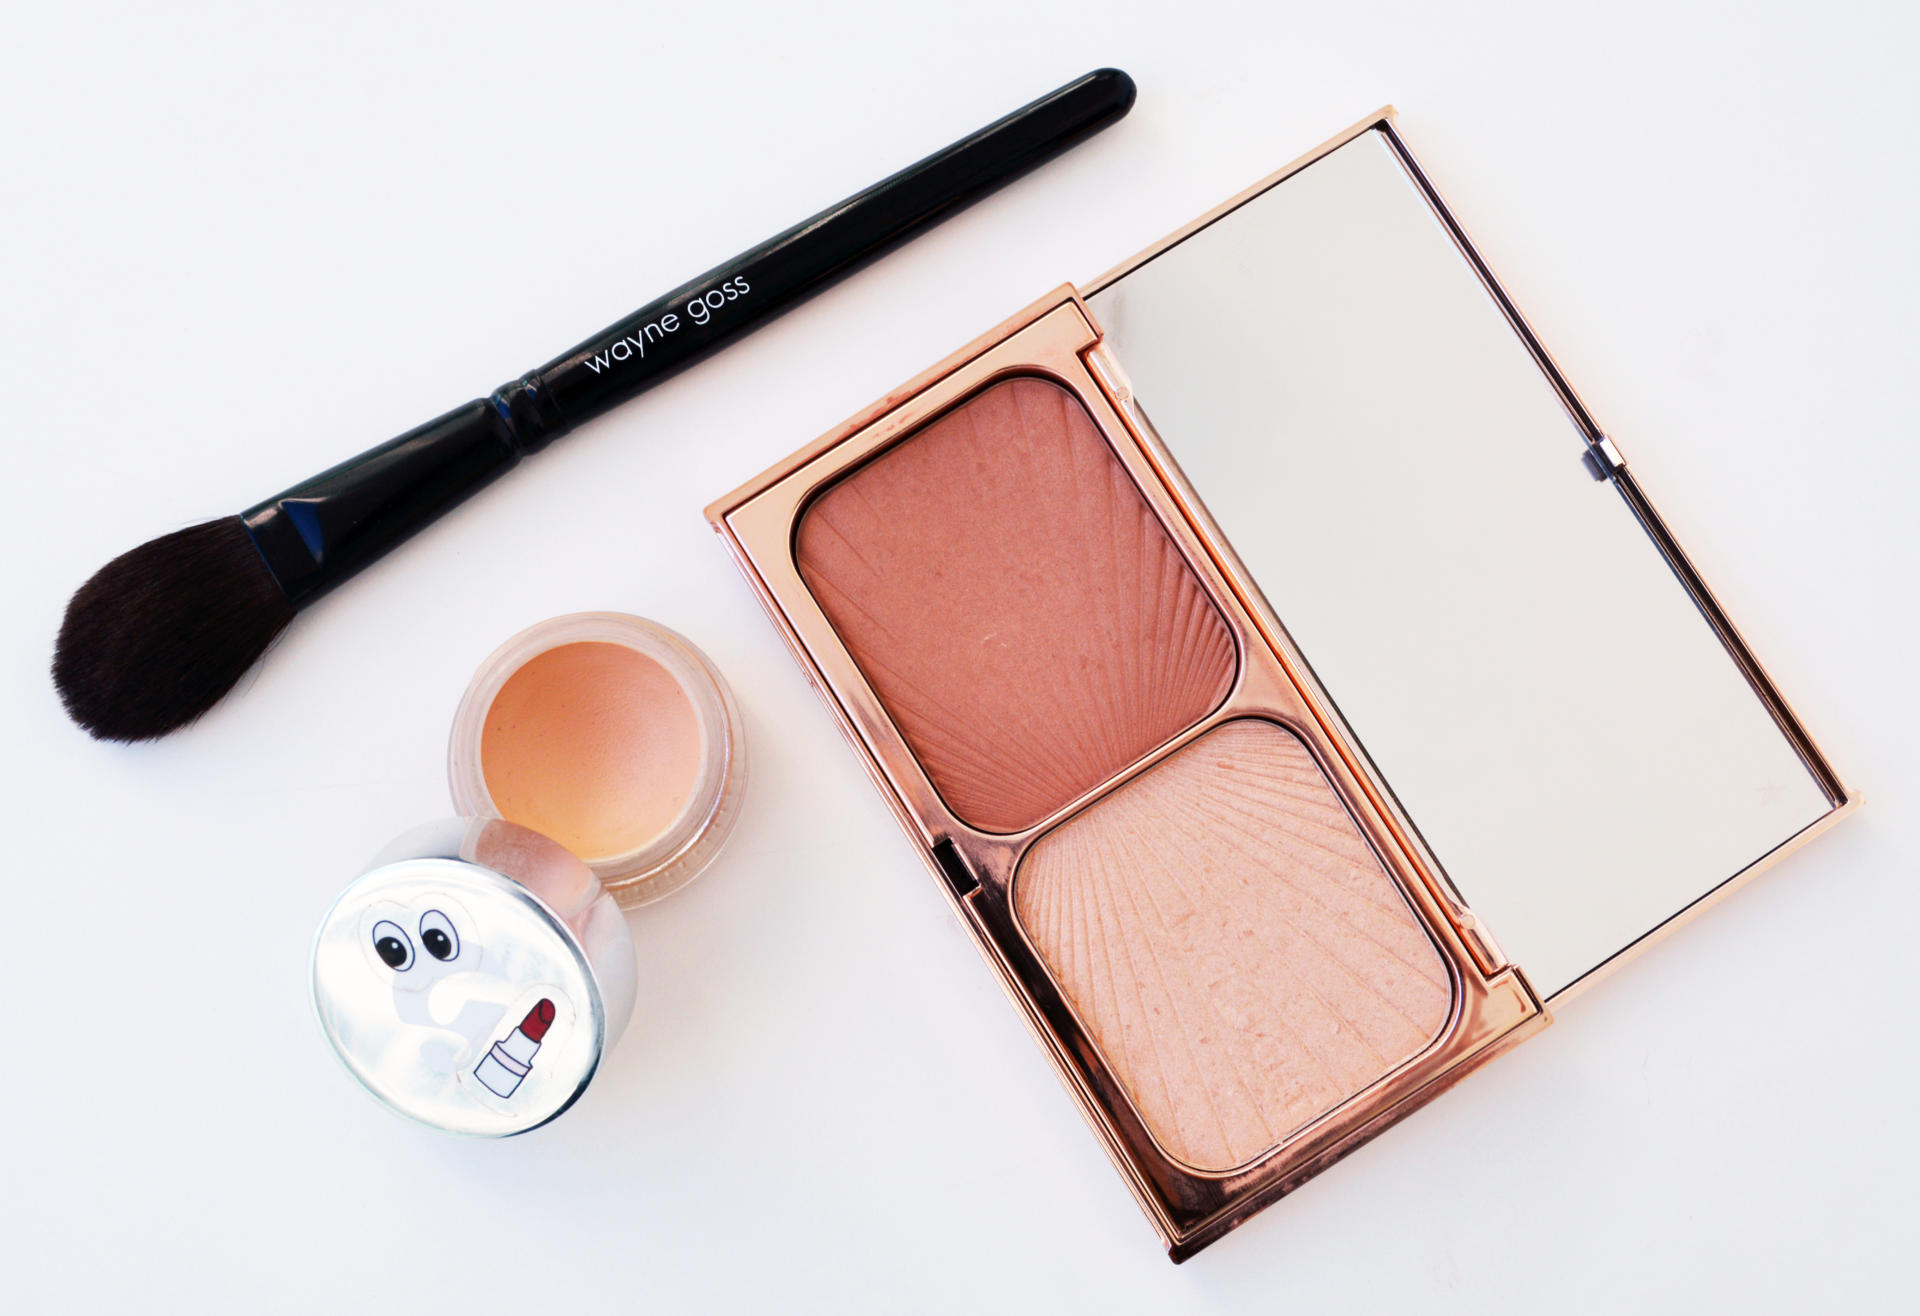 Charlotte Tilbury Filmstar Bronze & Glow, Wayne Goss The Air-Brush, Glossier Stretch Concealer